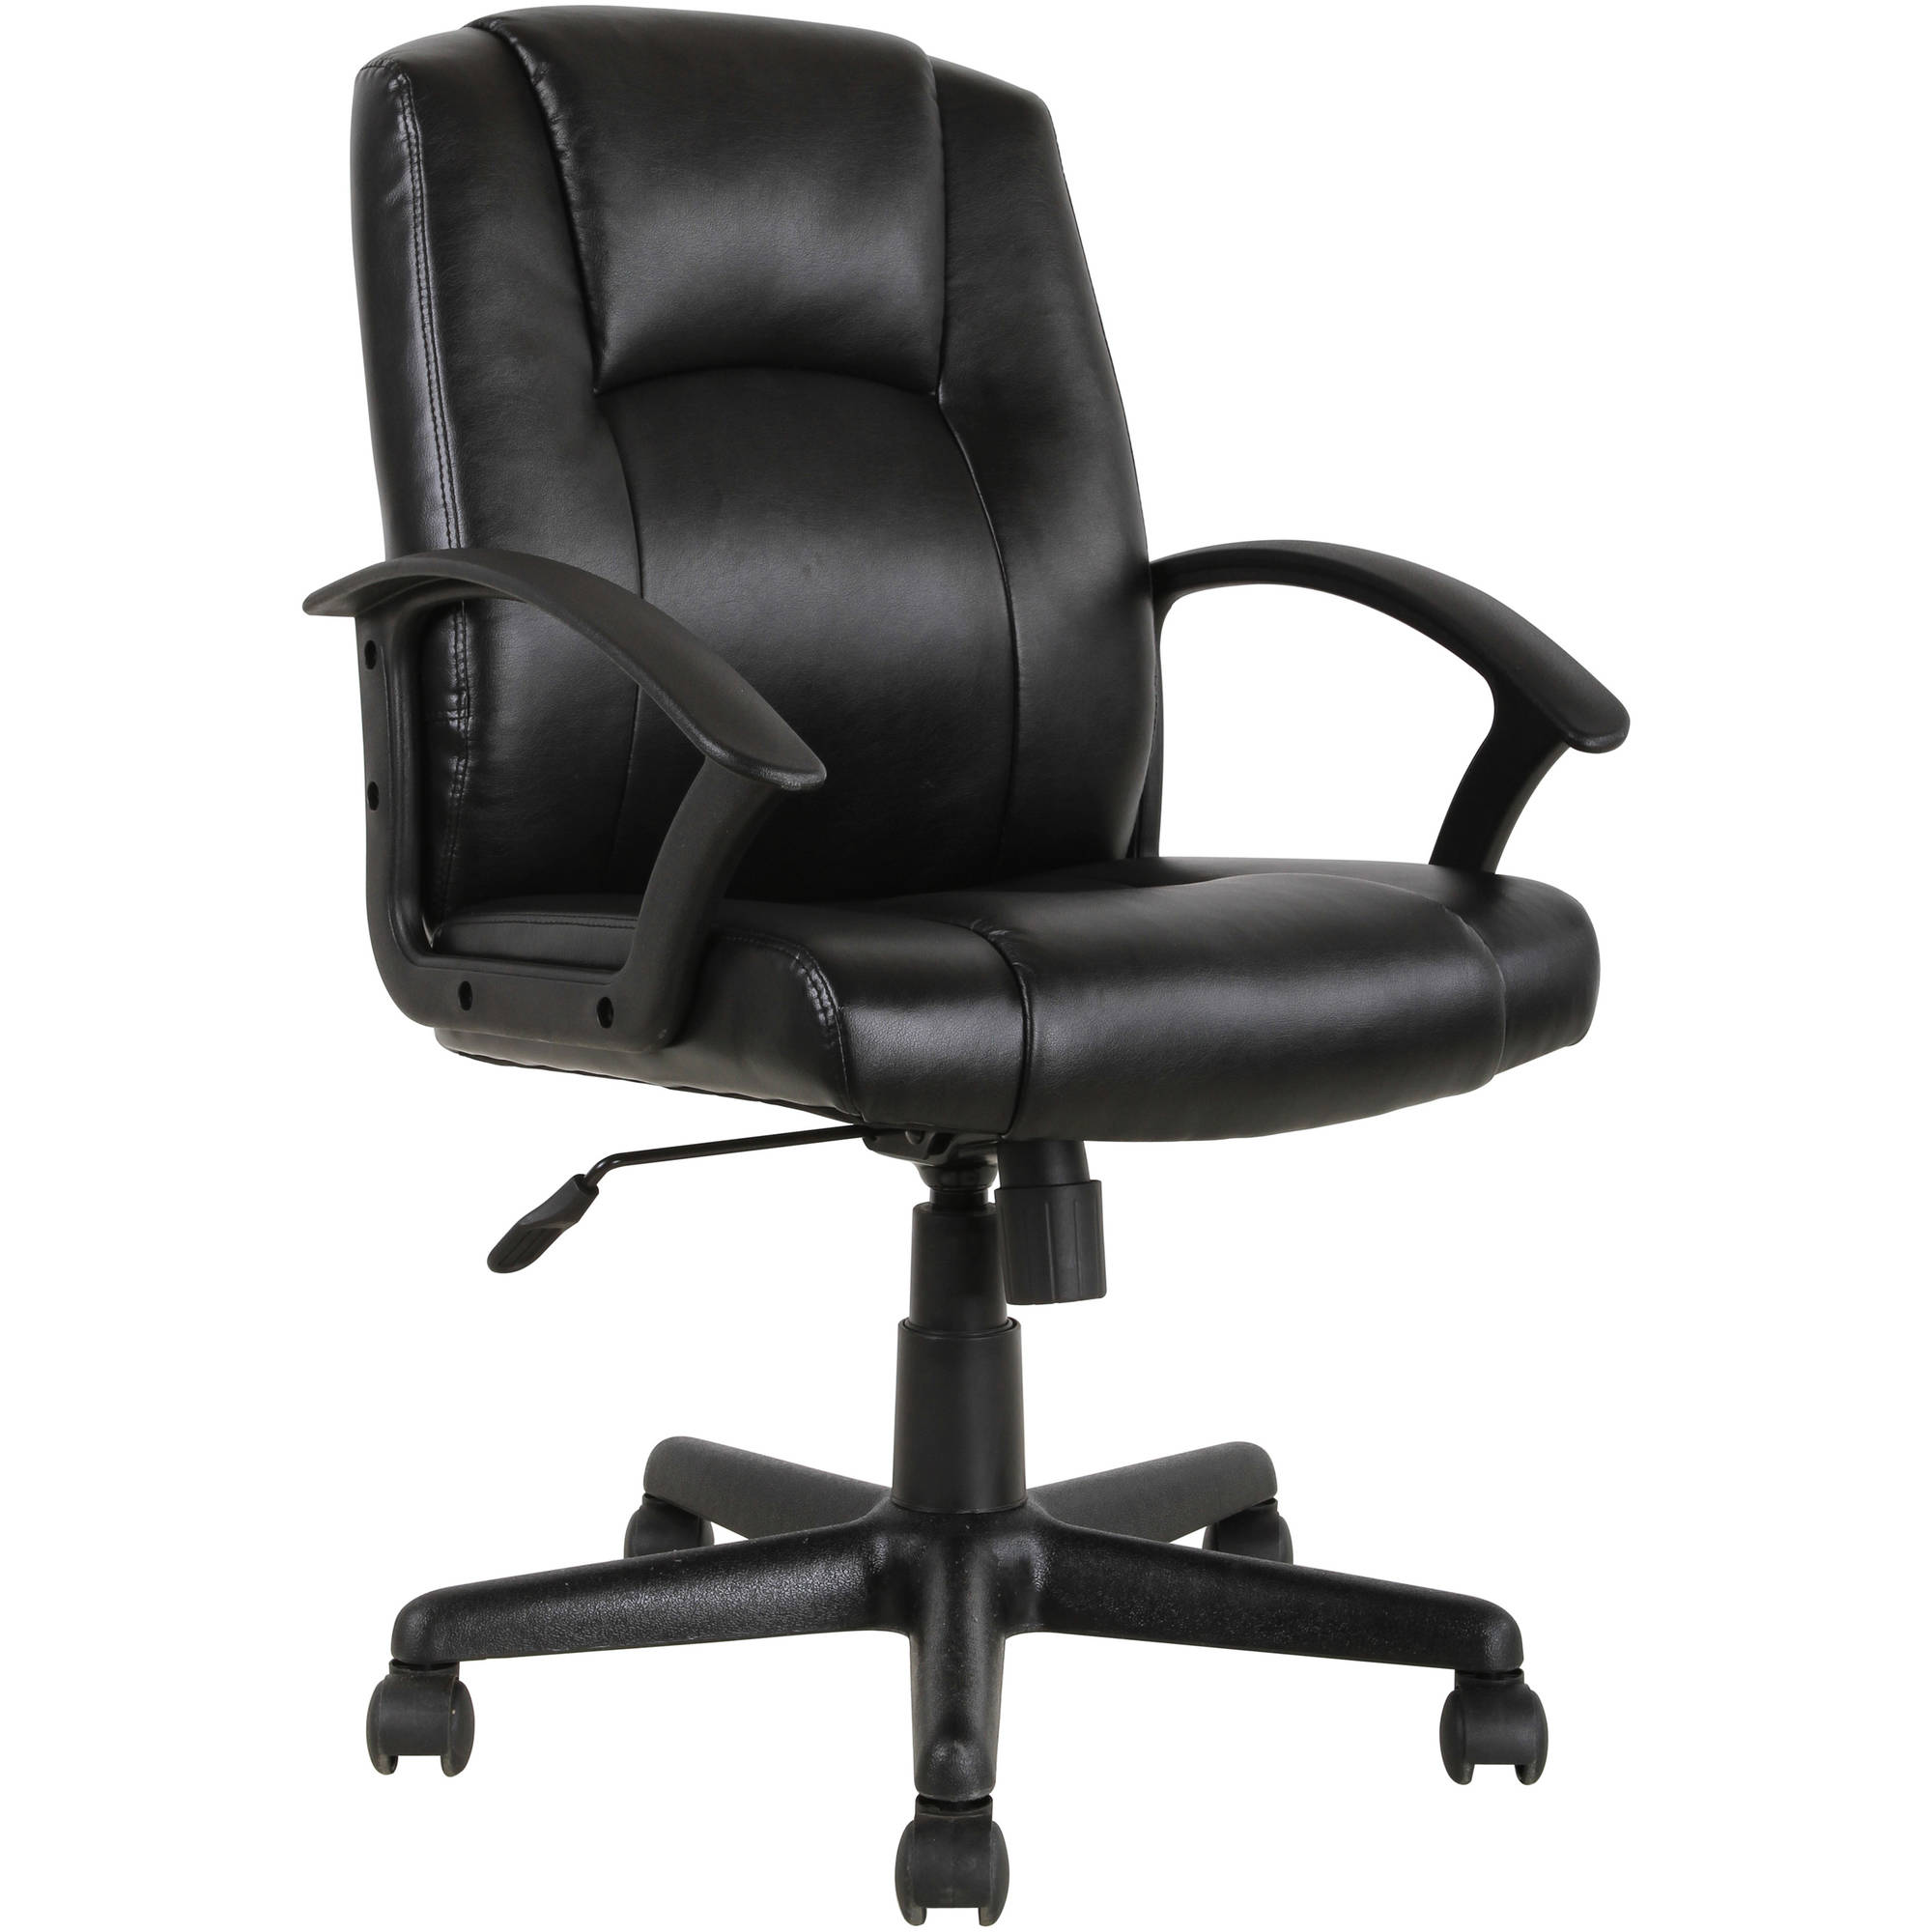 Mainstays Mid-Back Leather Office Chair, Black